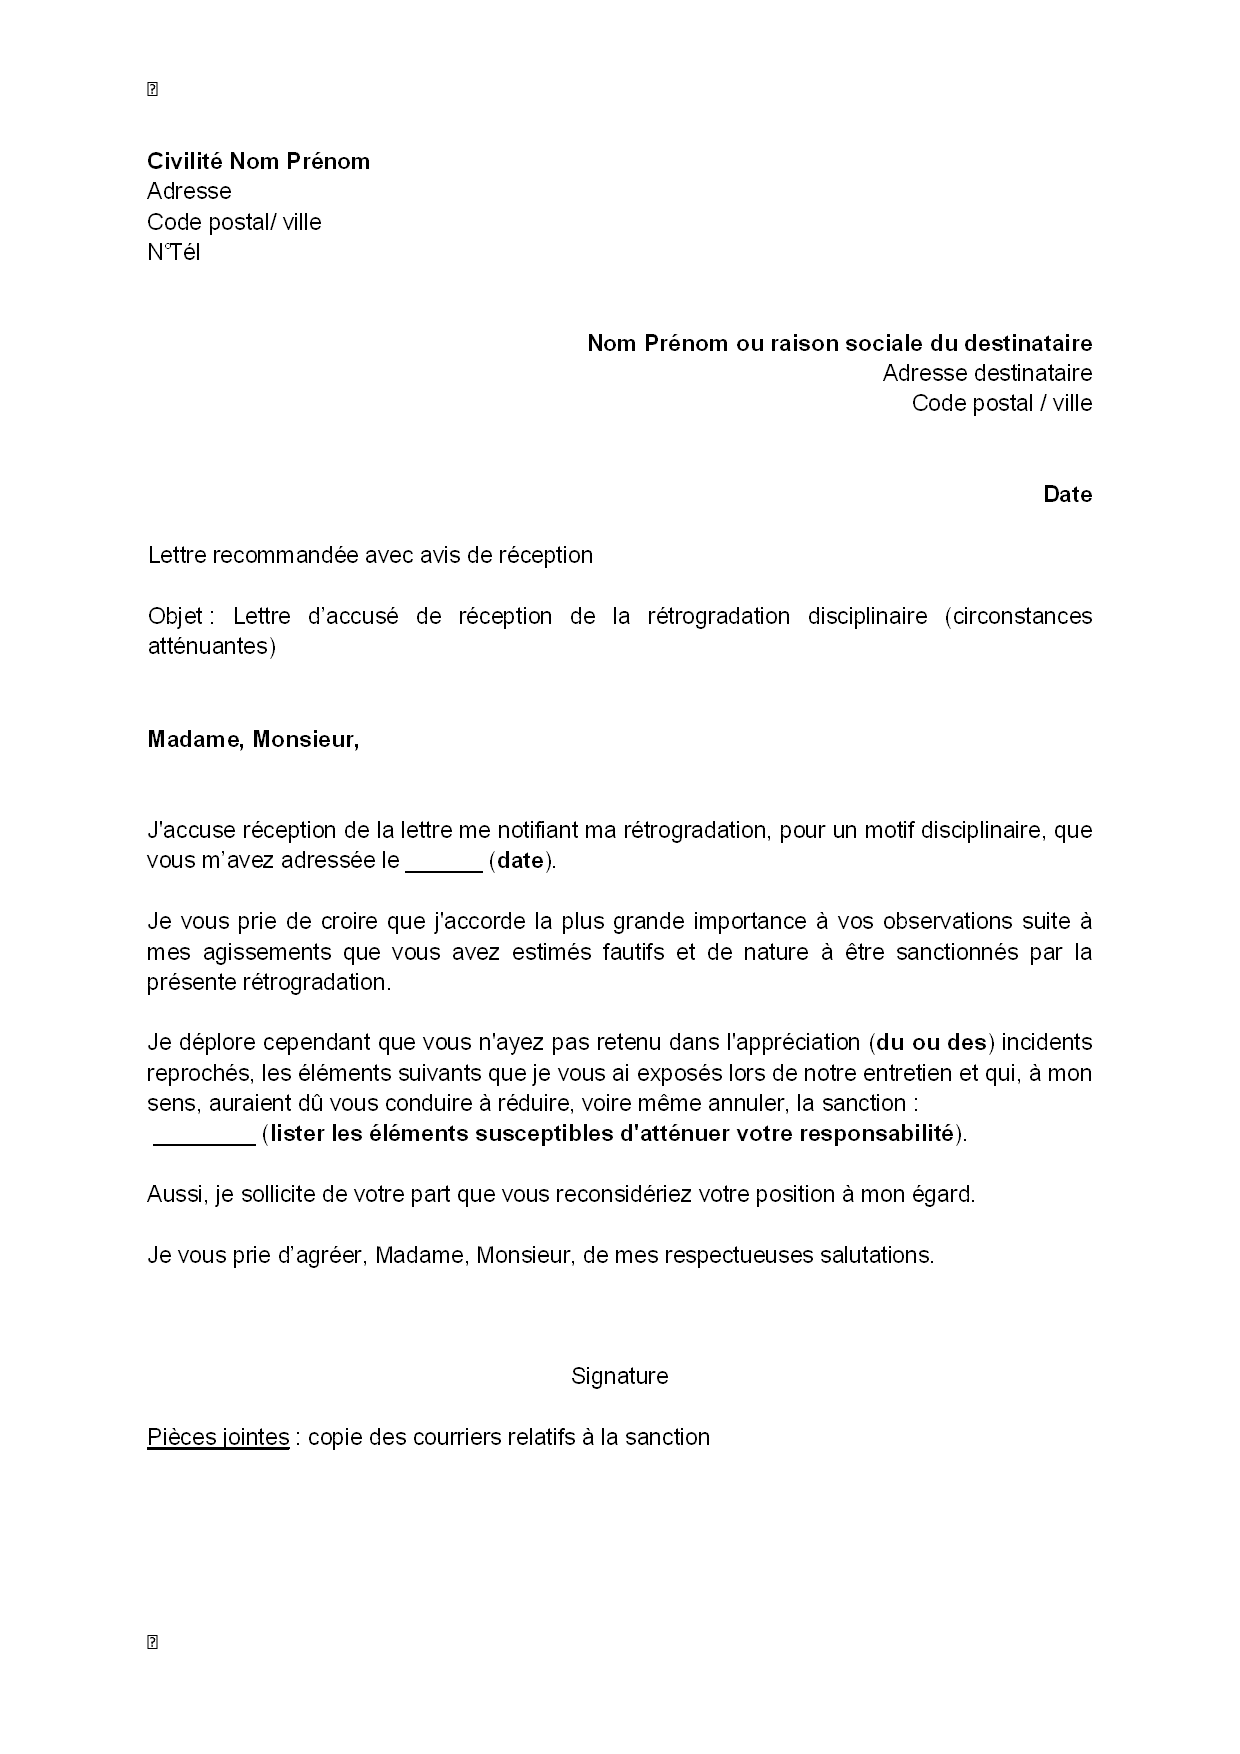 exemple gratuit de lettre accus u00e9 r u00e9ception r u00e9trogradation